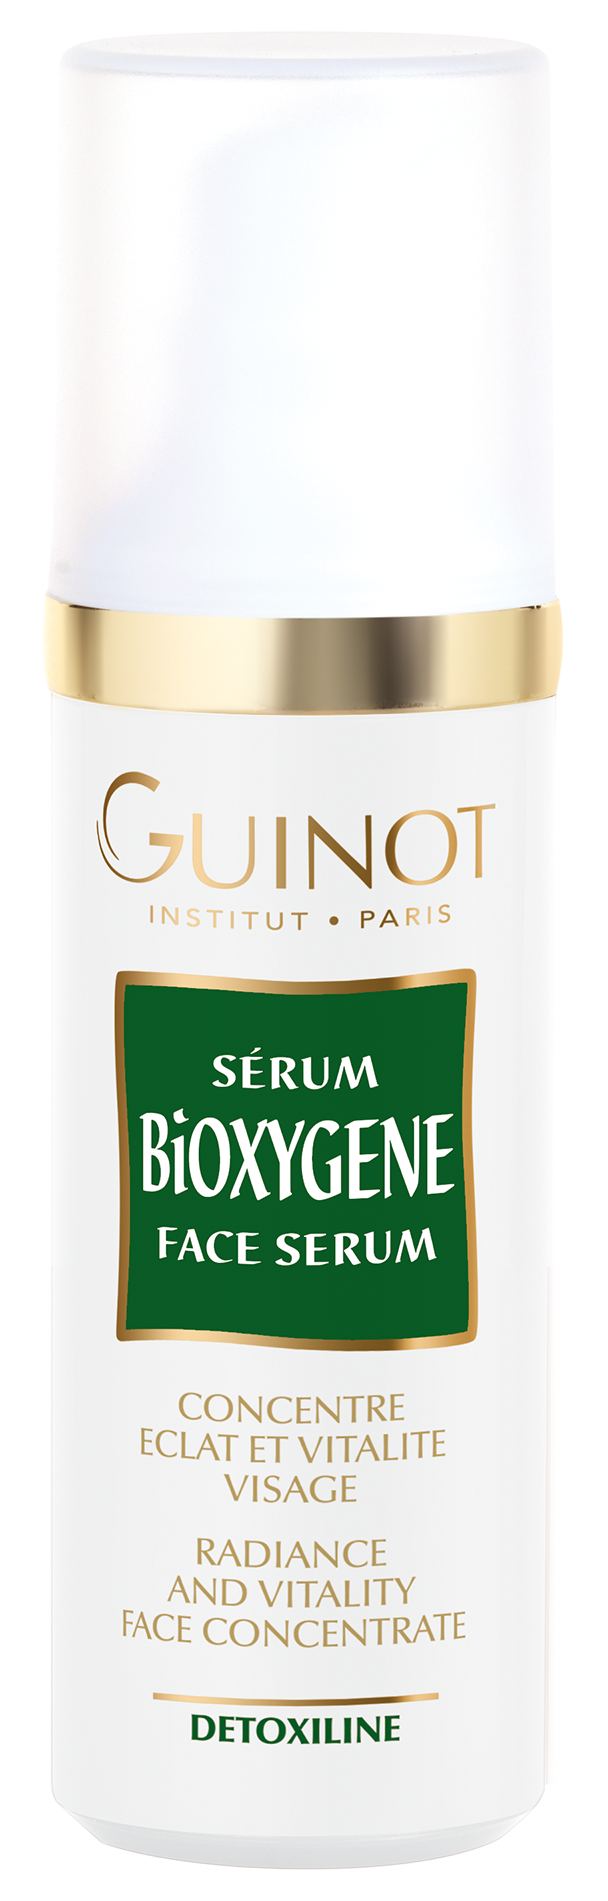 GUINOT BiOXYGENE Serum - 30 ml